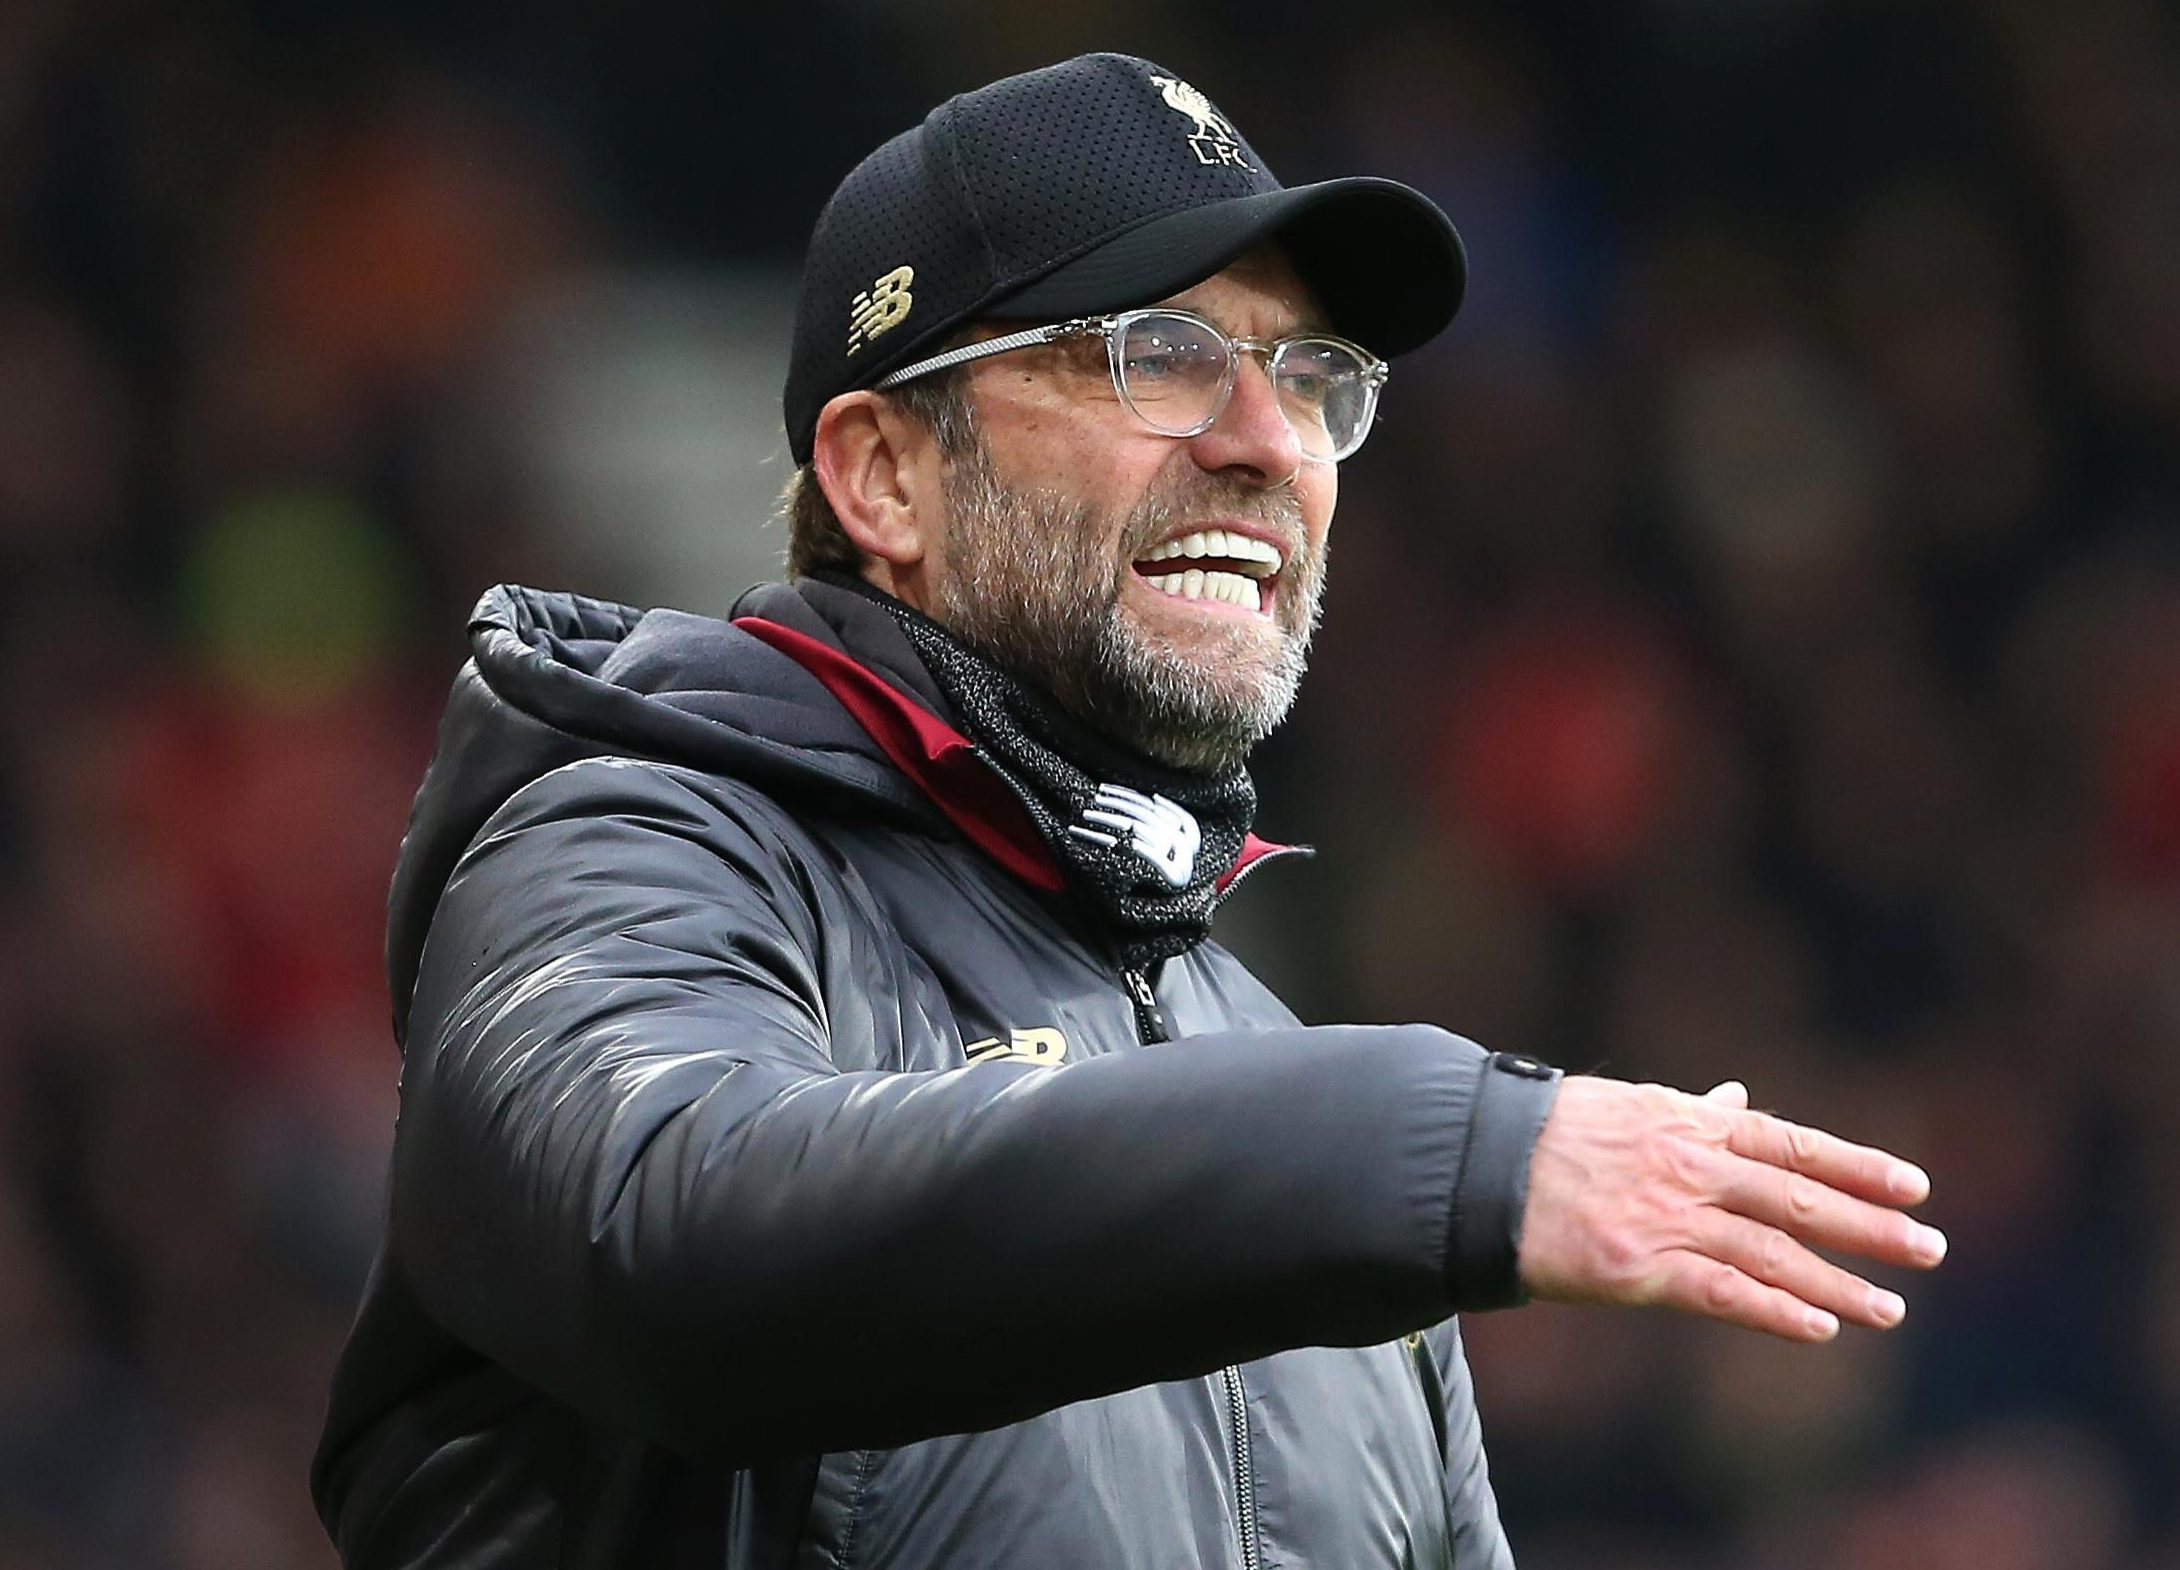 Jurgen Klopp's side must win the highly anticipated showdown at Anfield